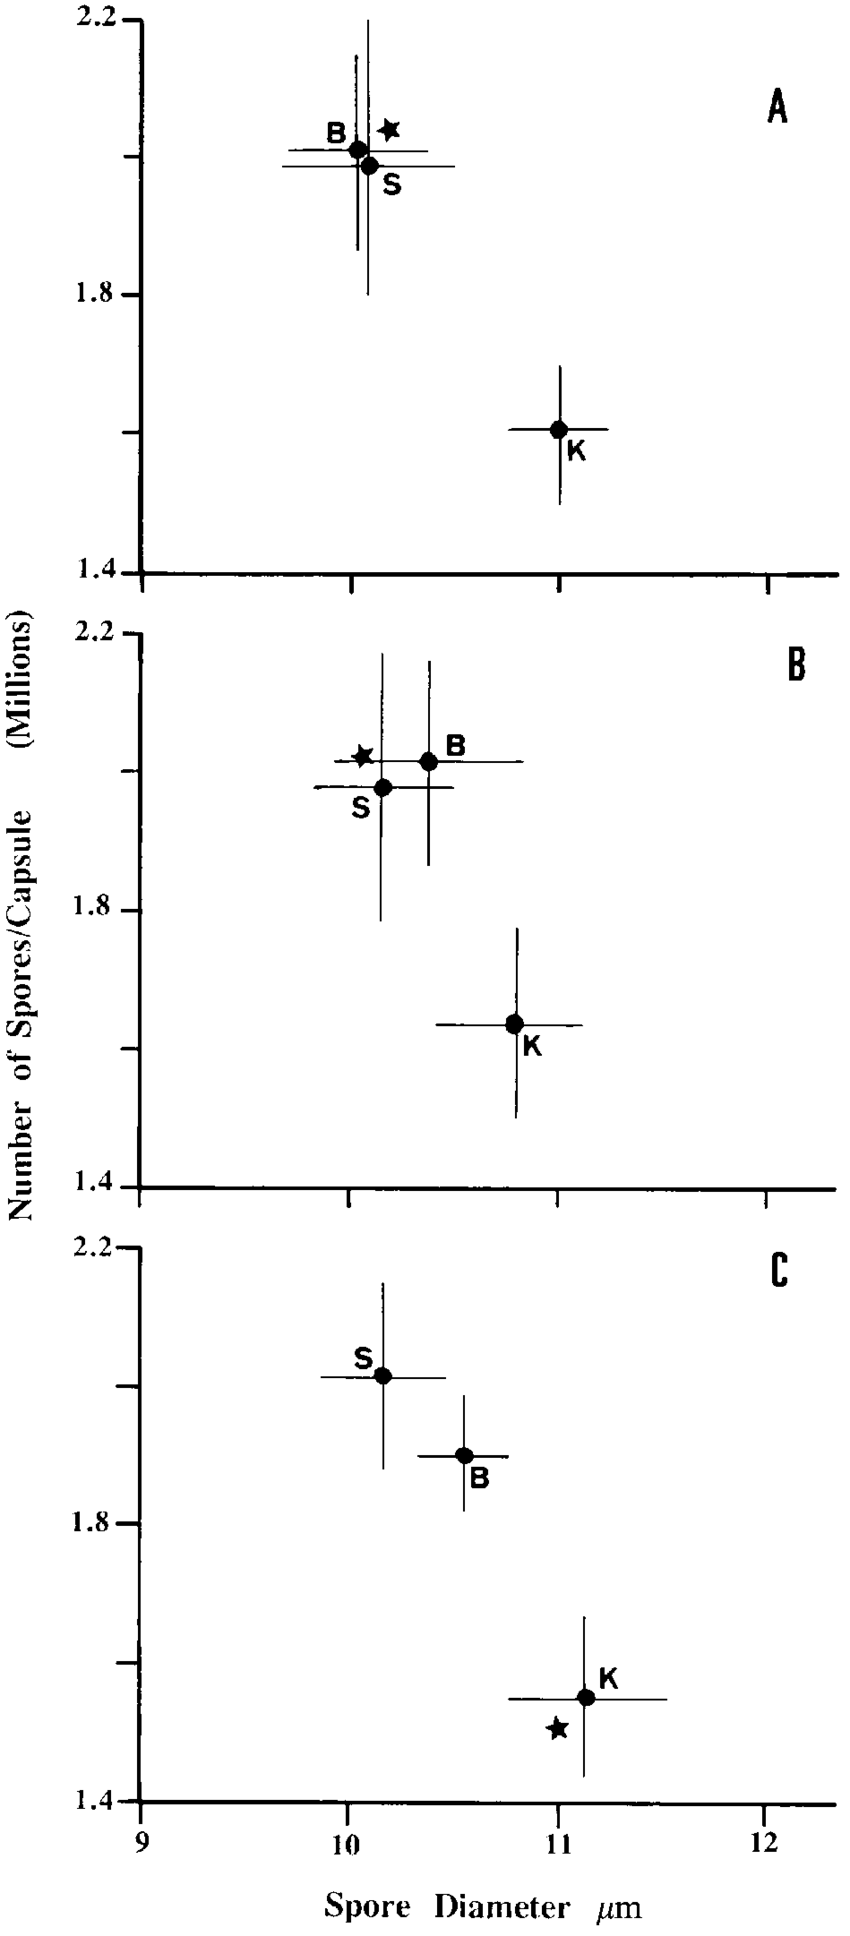 hight resolution of bivariate mean and standard errors for transplants of polytrichum juniperinum on spore diameter and number of